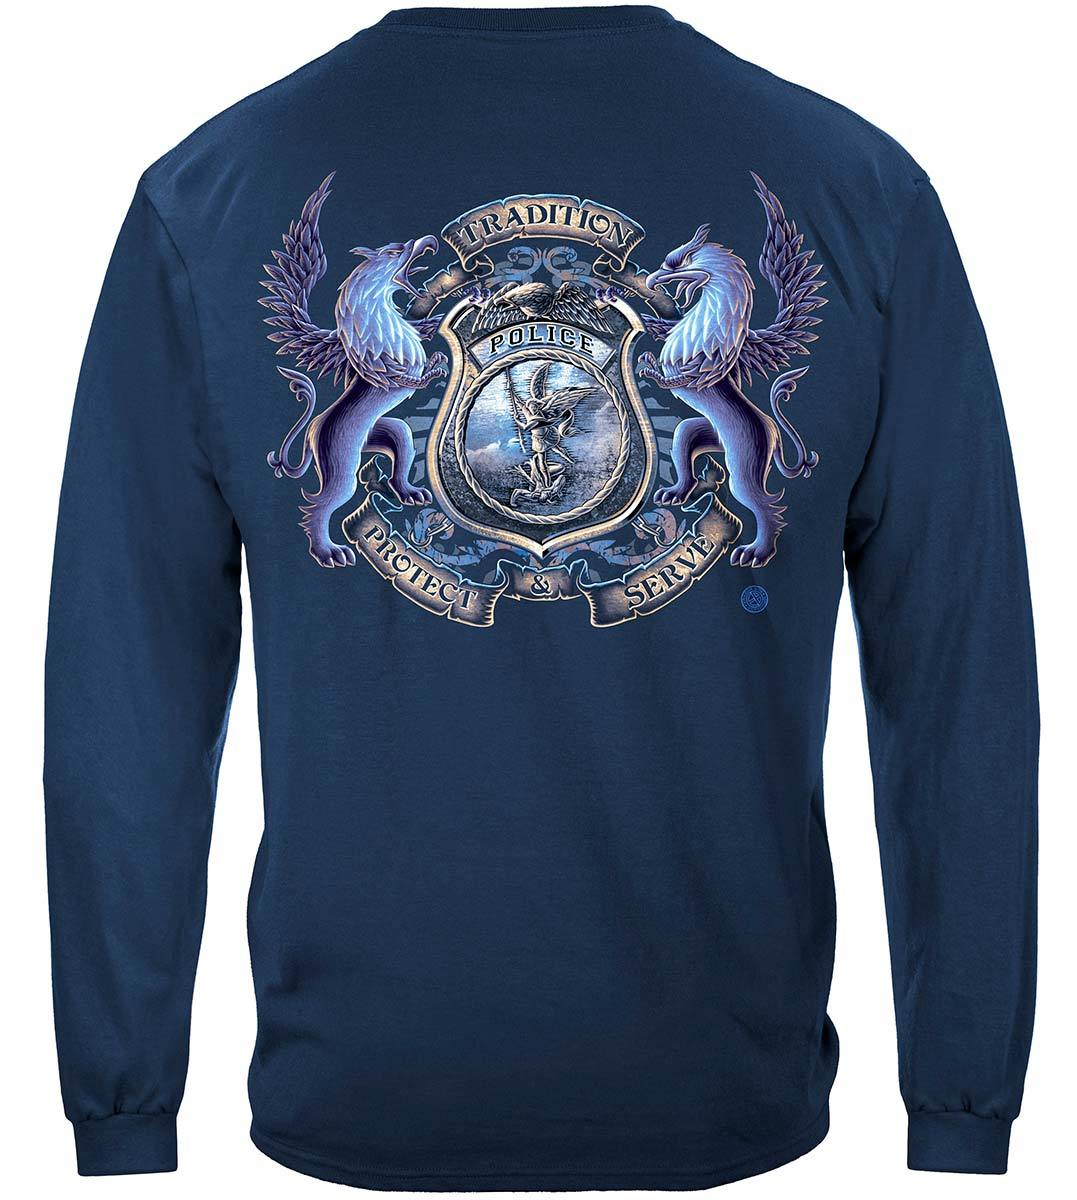 Police Coat of Arms Premium Long Sleeves